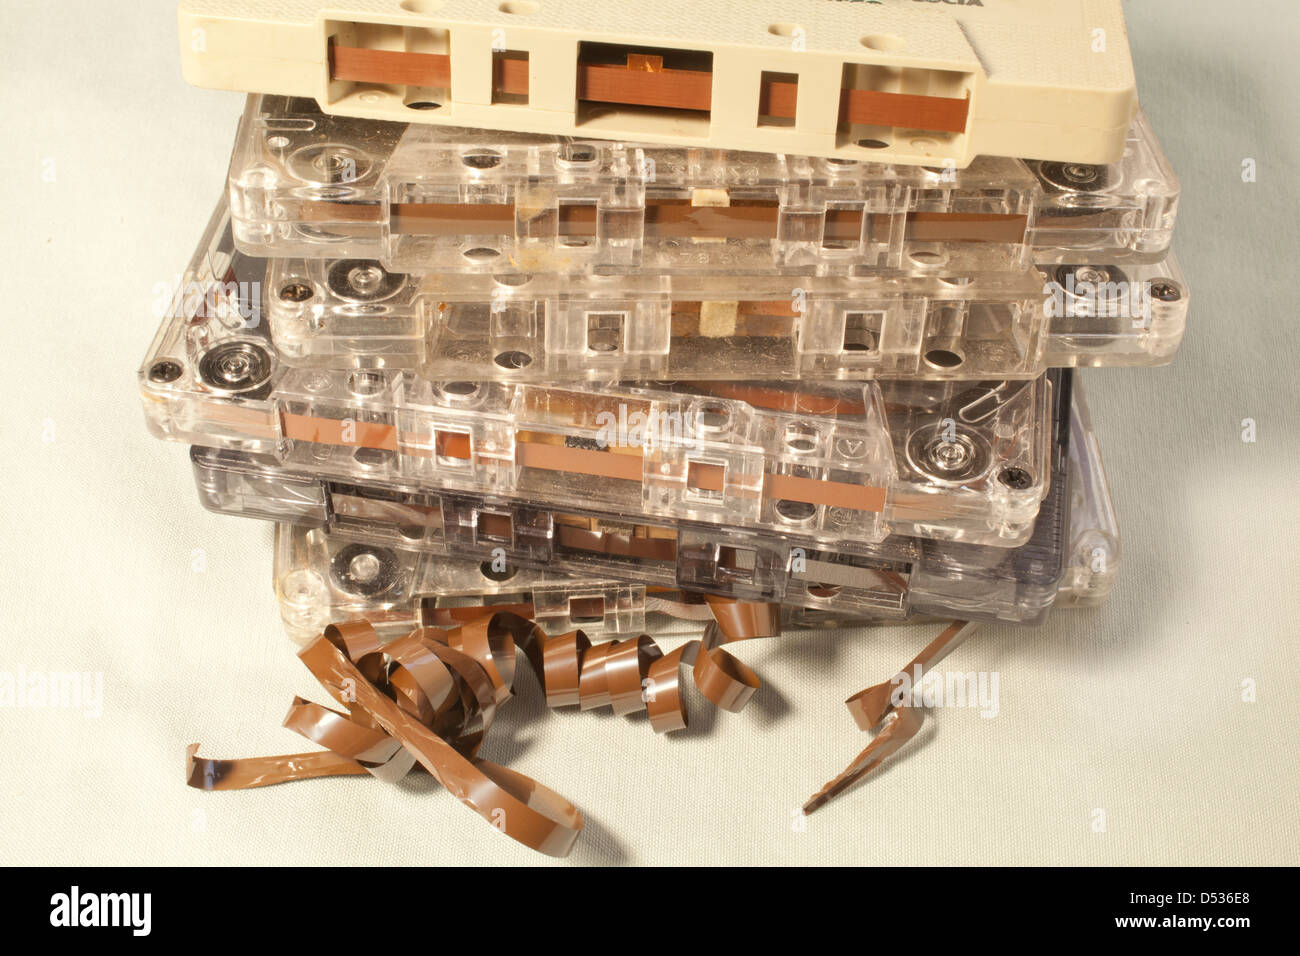 A pile of old cassette tapes. - Stock Image